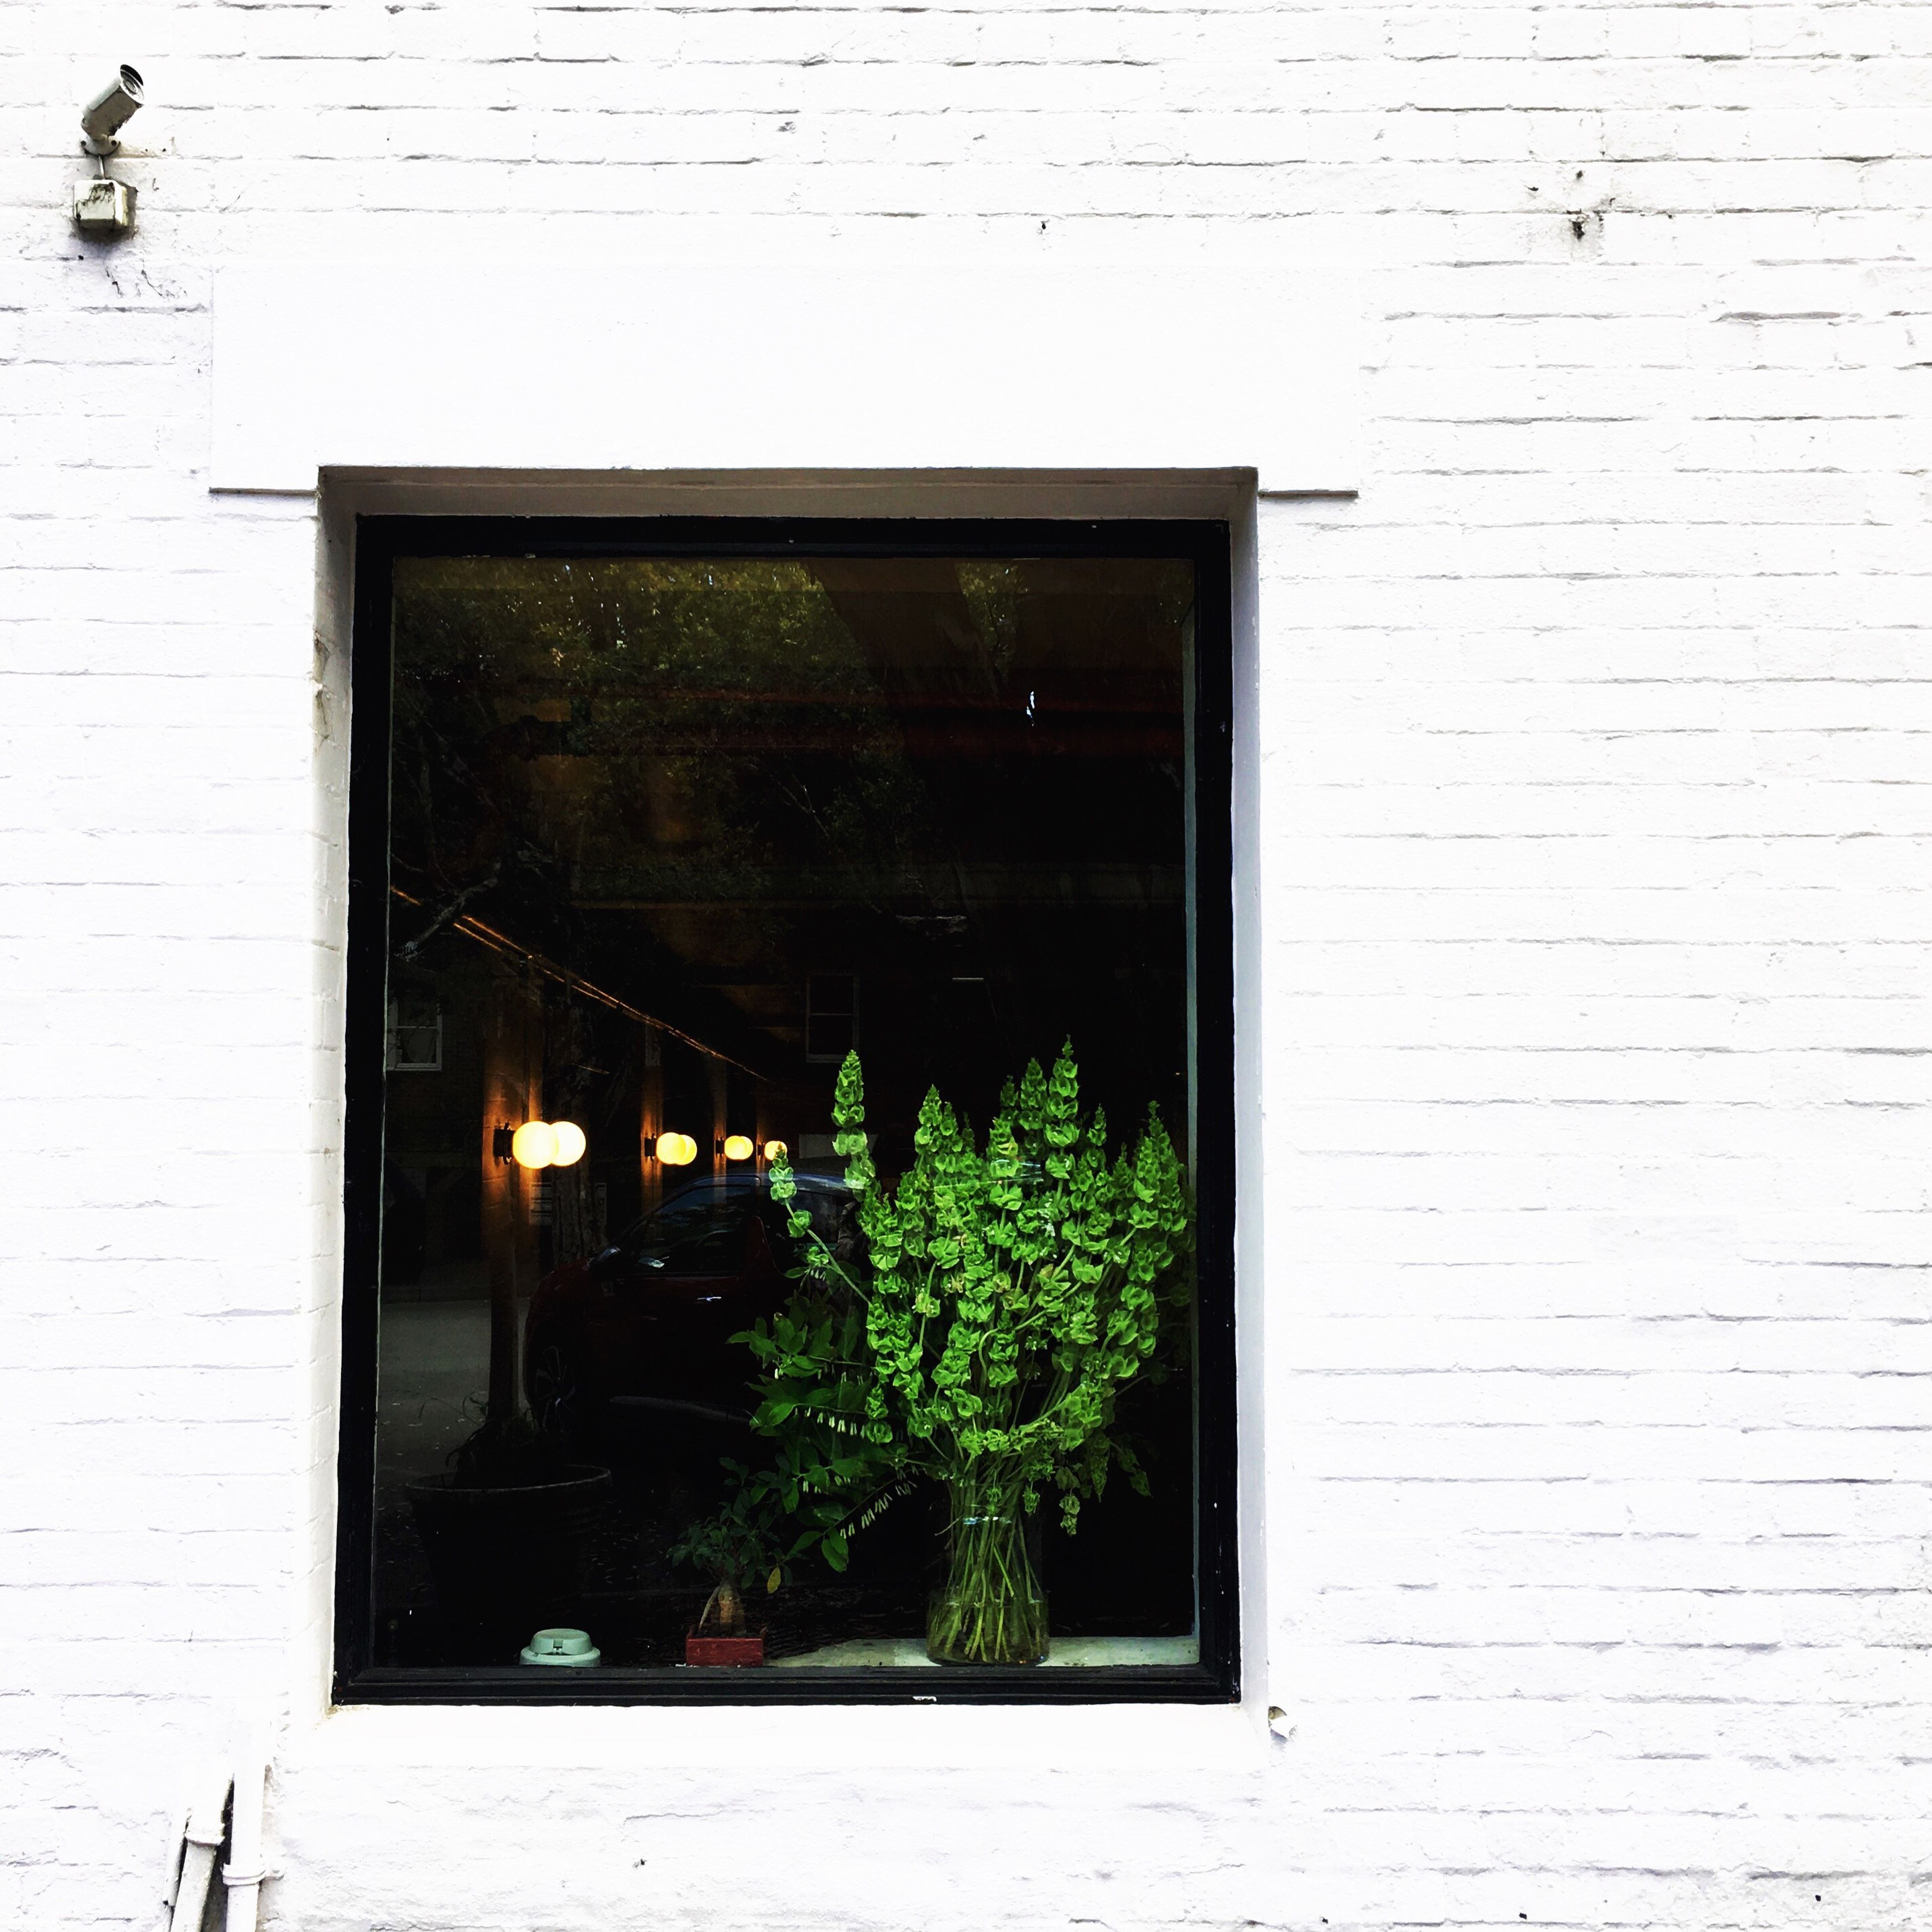 plant, window, building exterior, architecture, built structure, no people, day, outdoors, nature